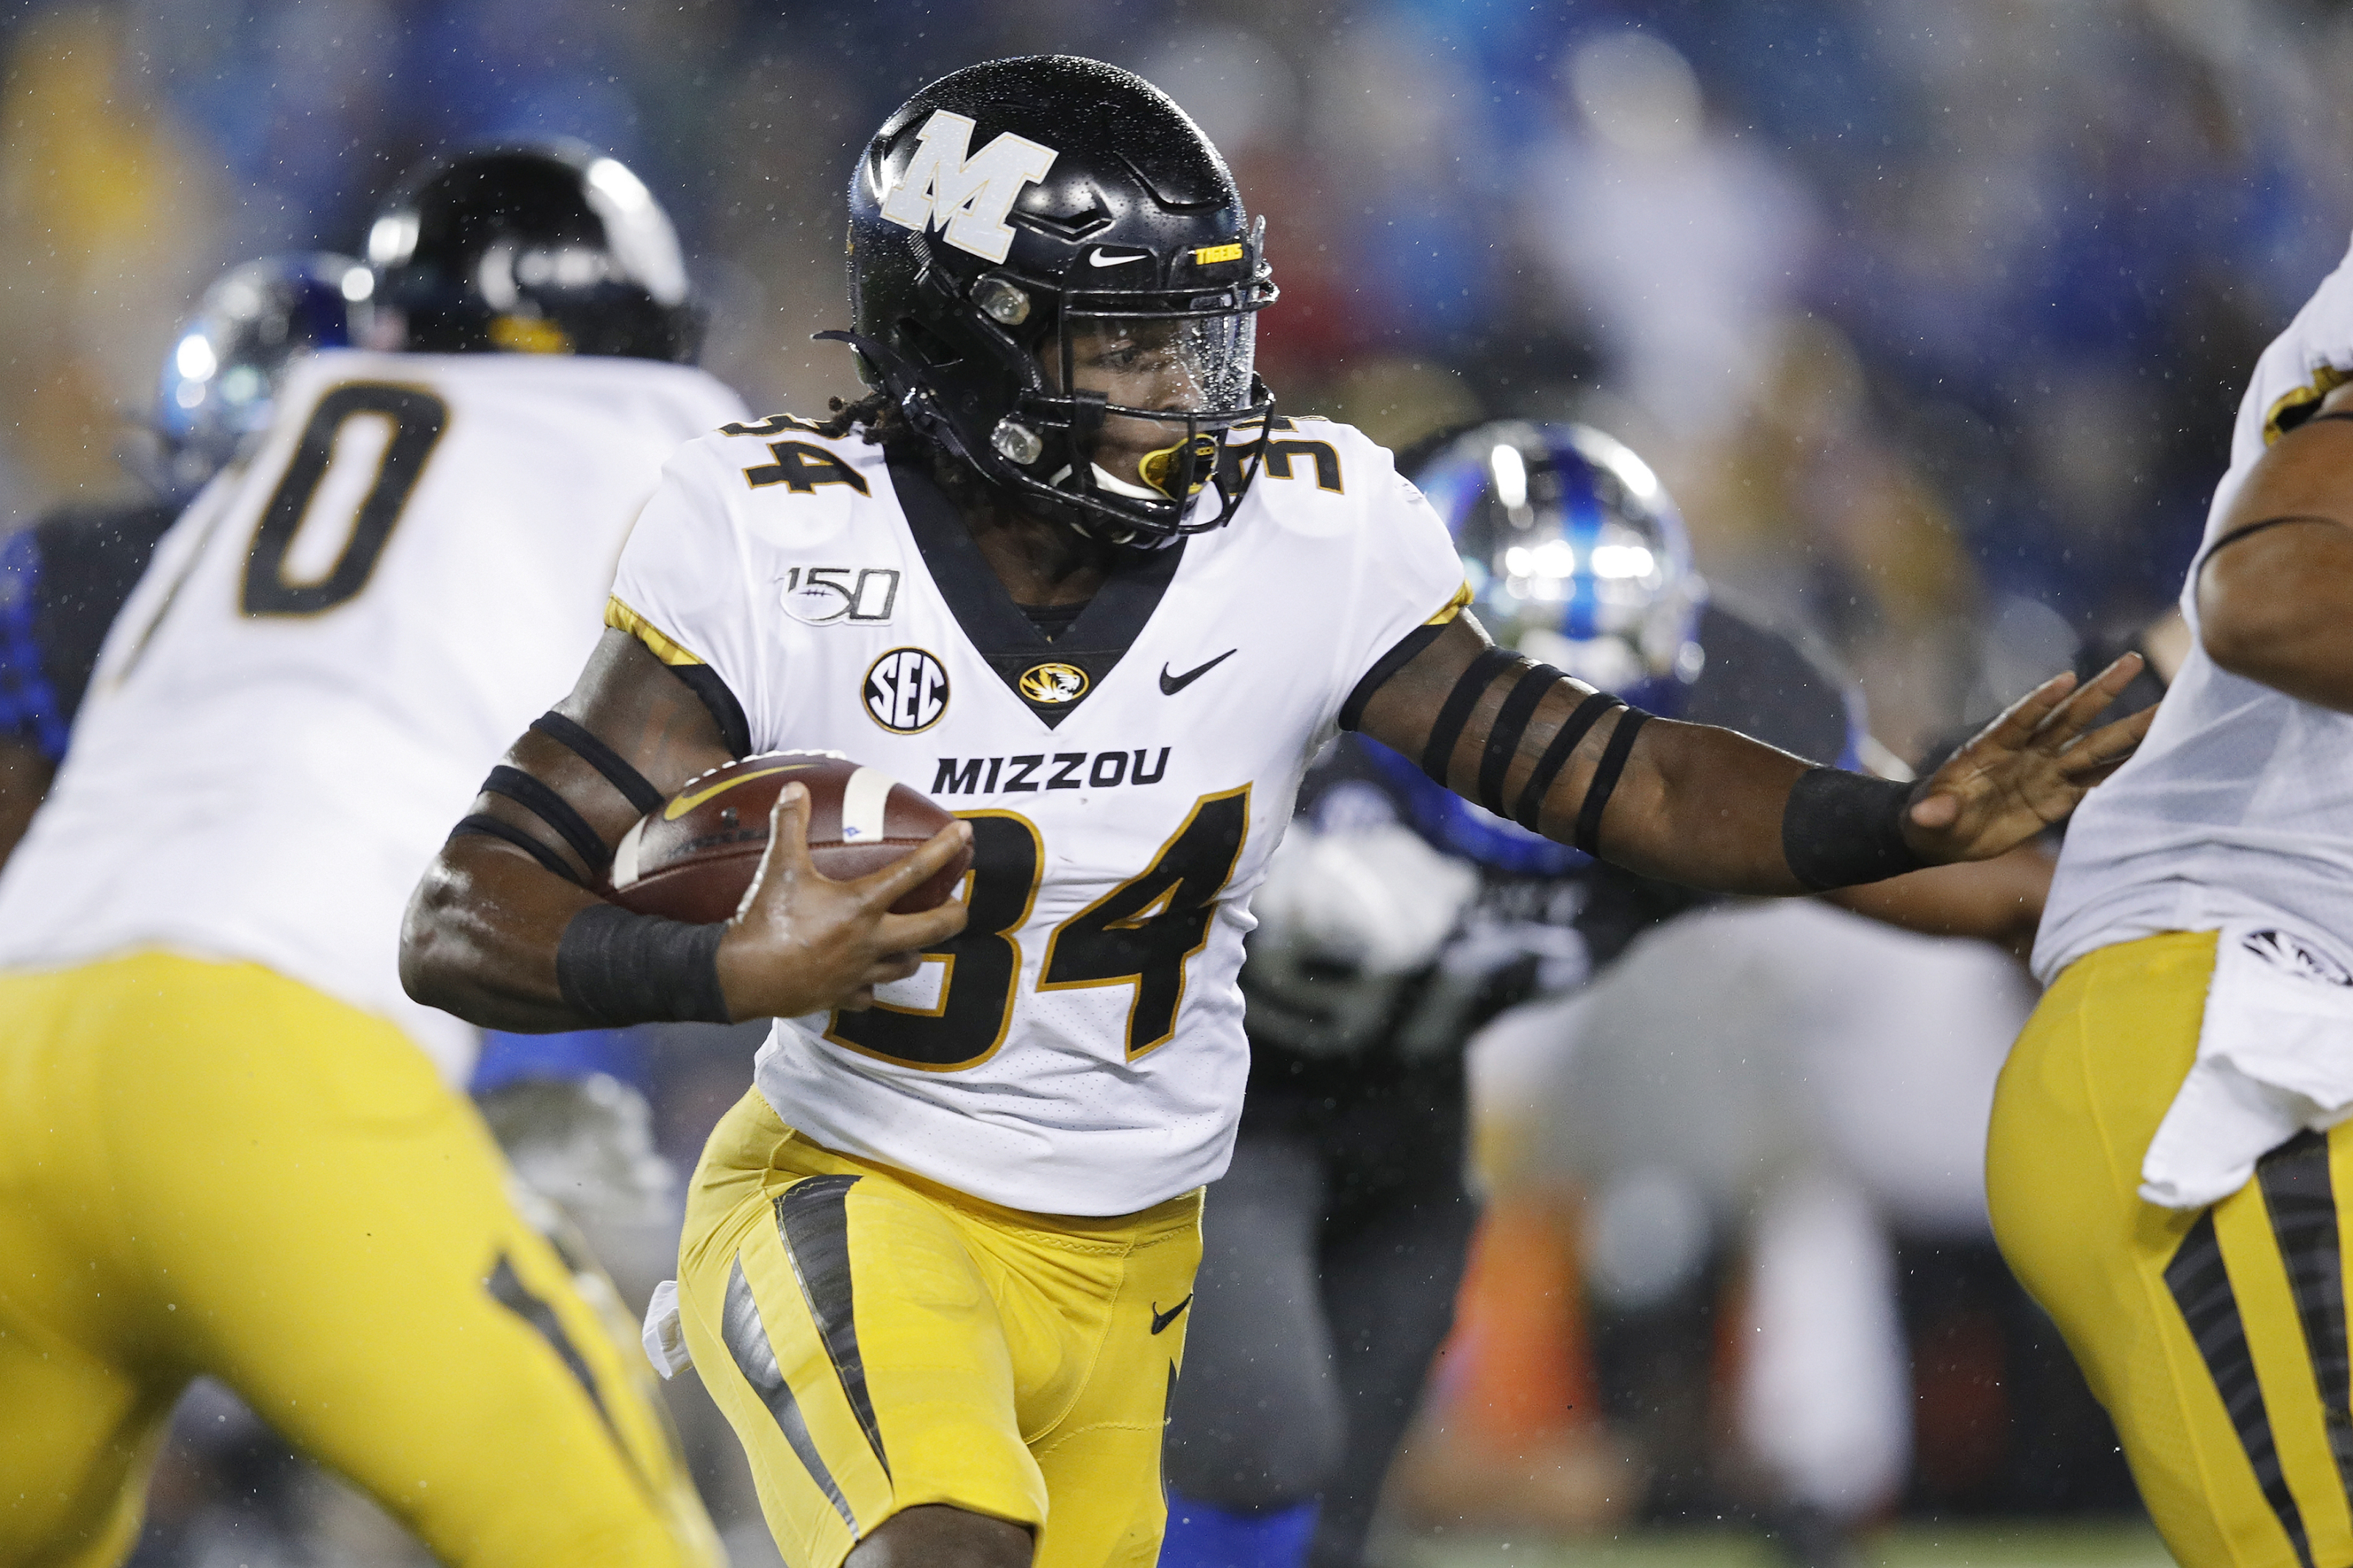 Mizzou Football Can Mizzou Pull Of An Upset Vs Lsu